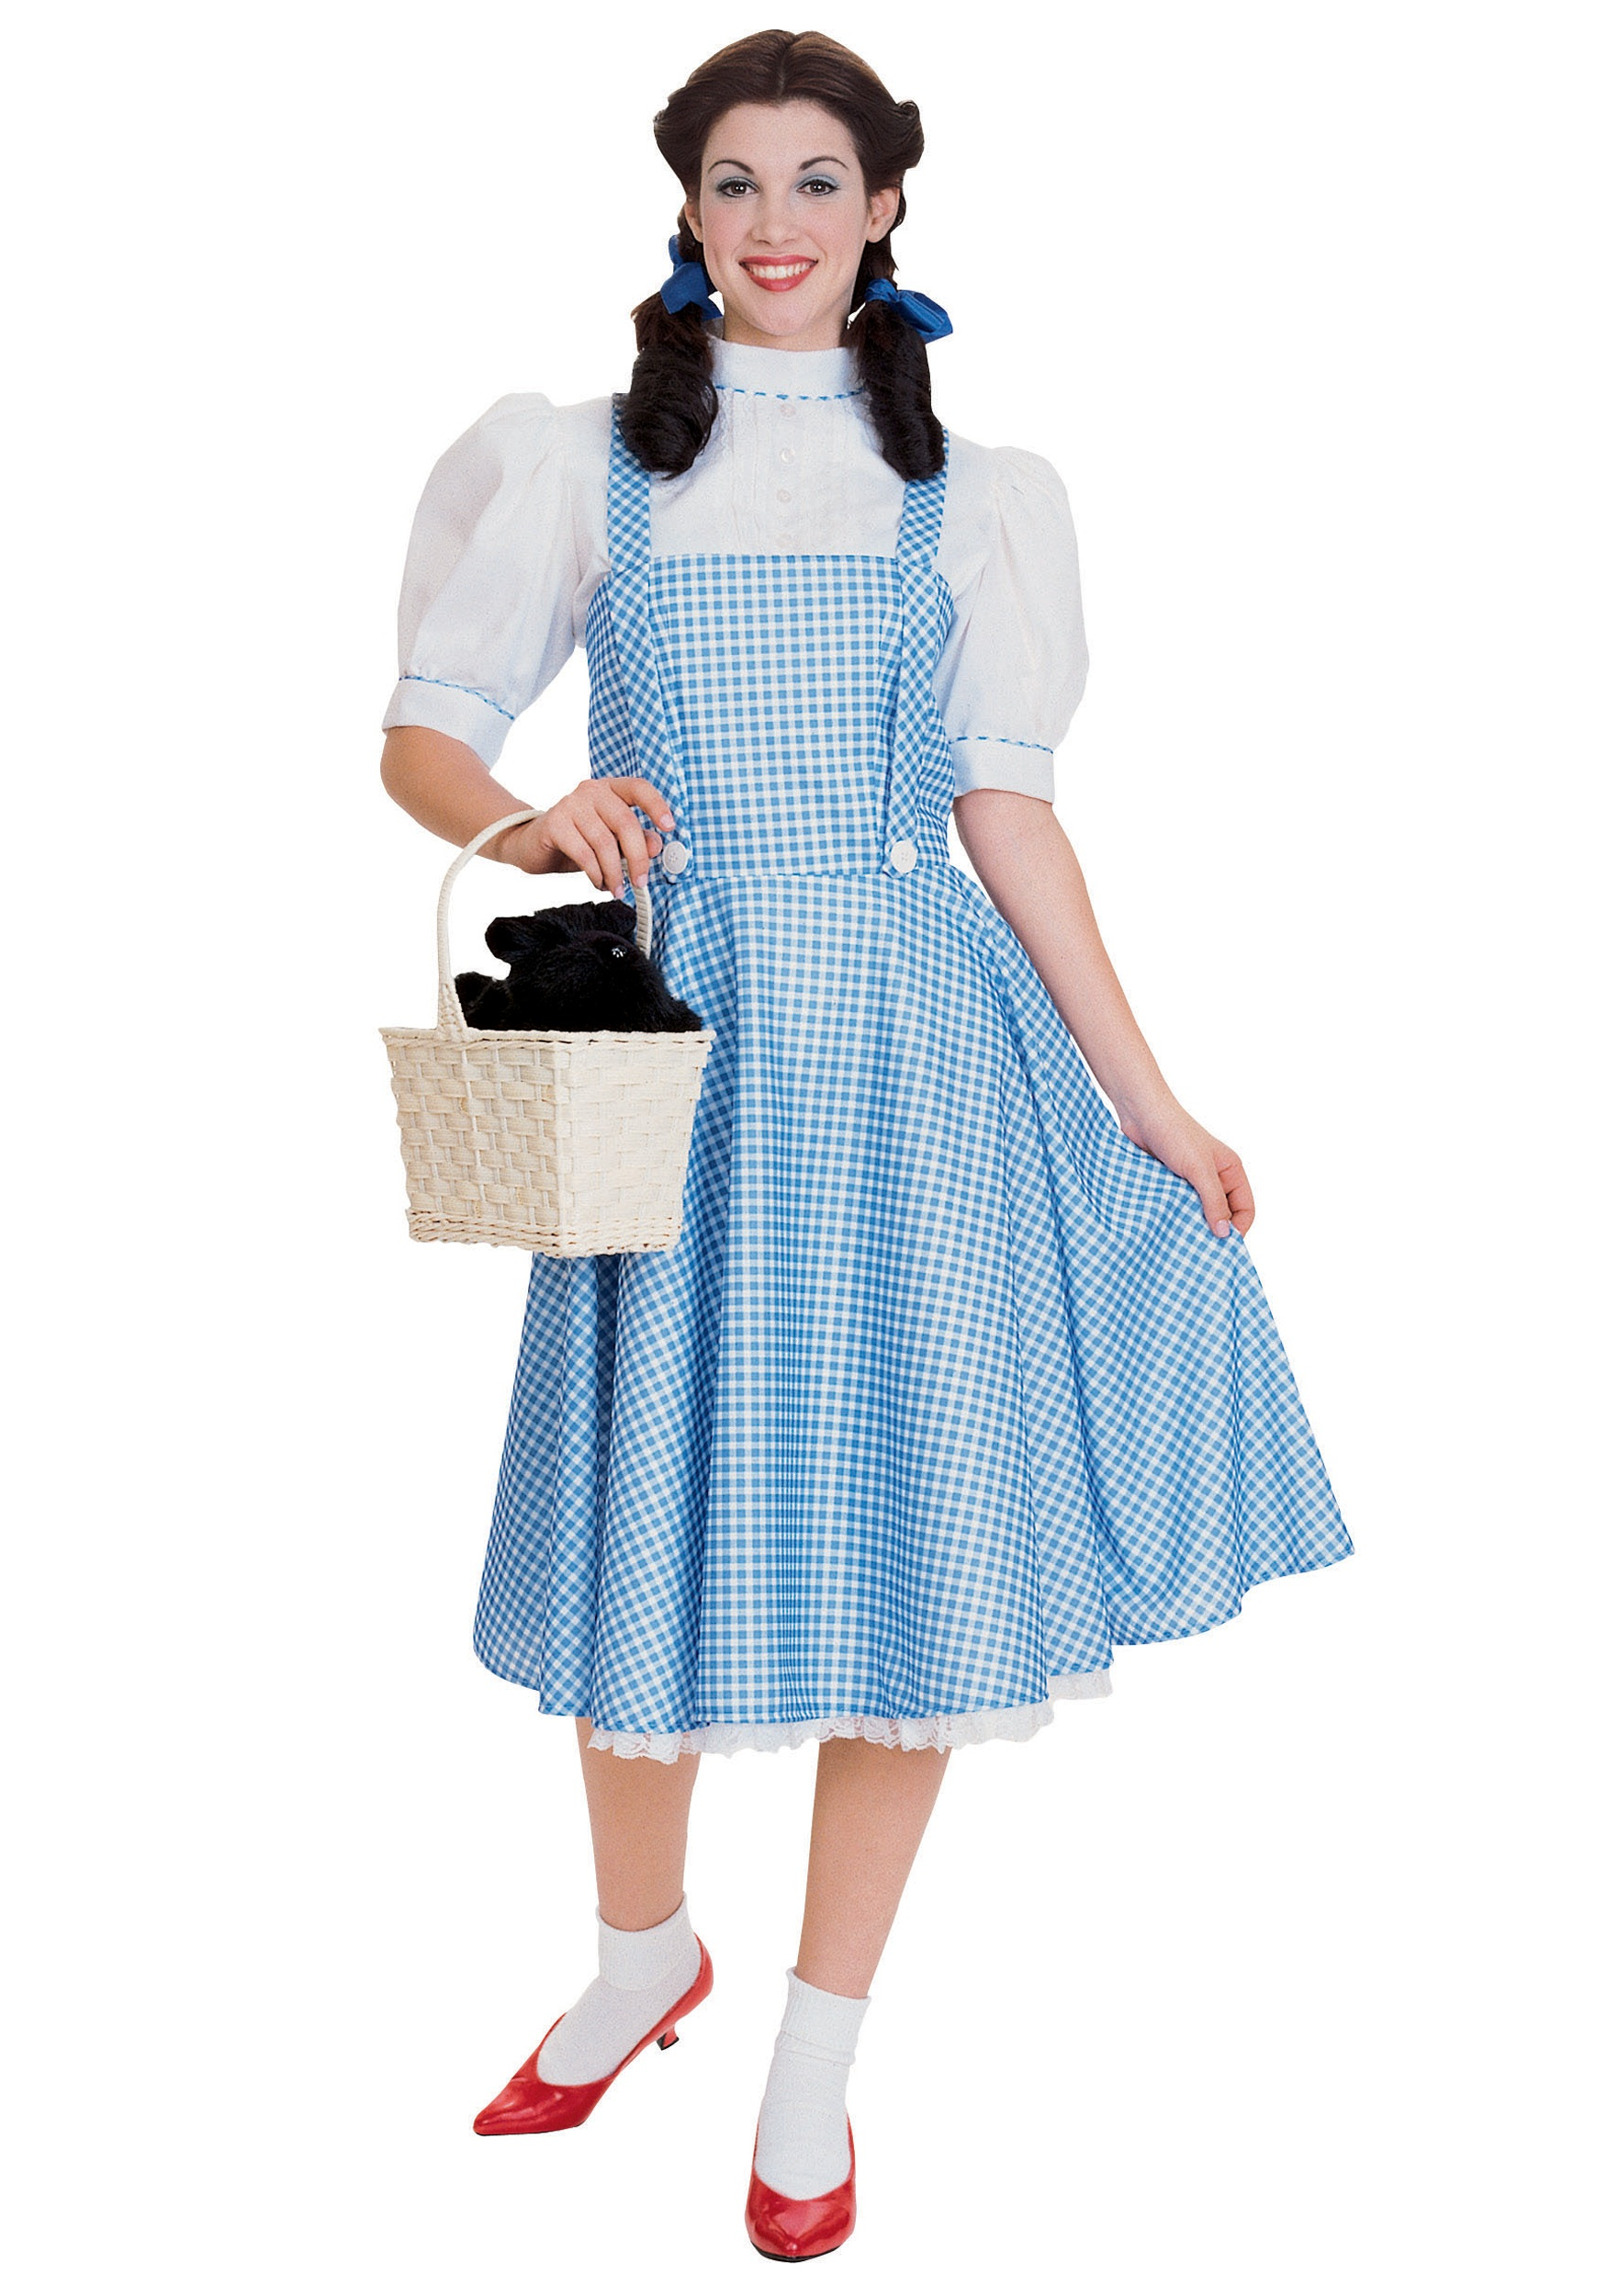 Results 61 - 113 of 113 for Adult Wizard of Oz Costumes